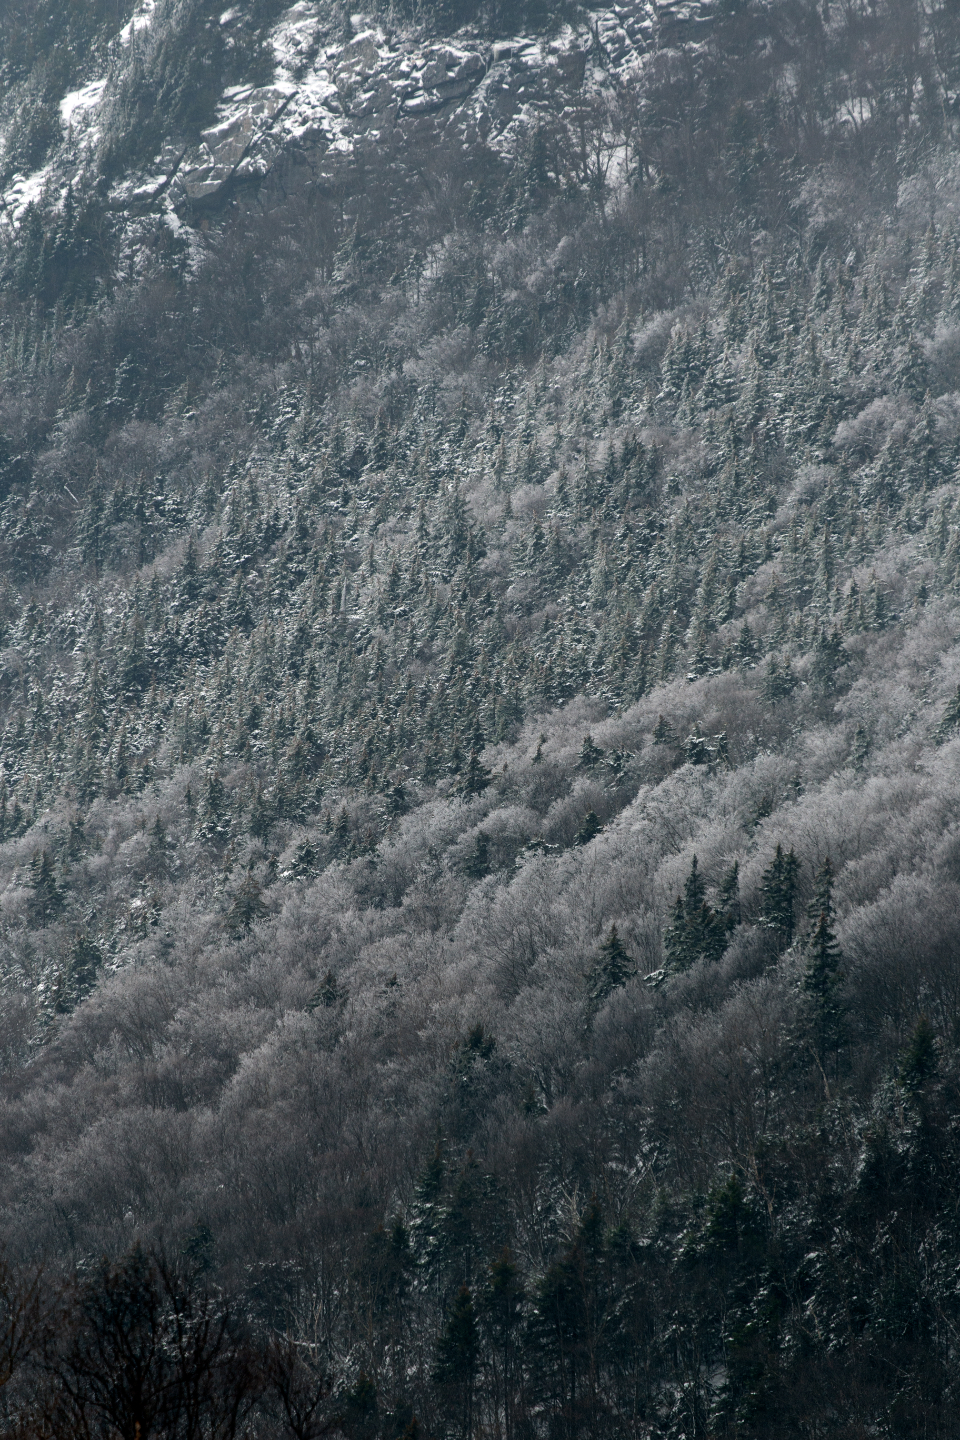 snow forest trees winter cold season nature outdoors landscape north climate mountain slope frost